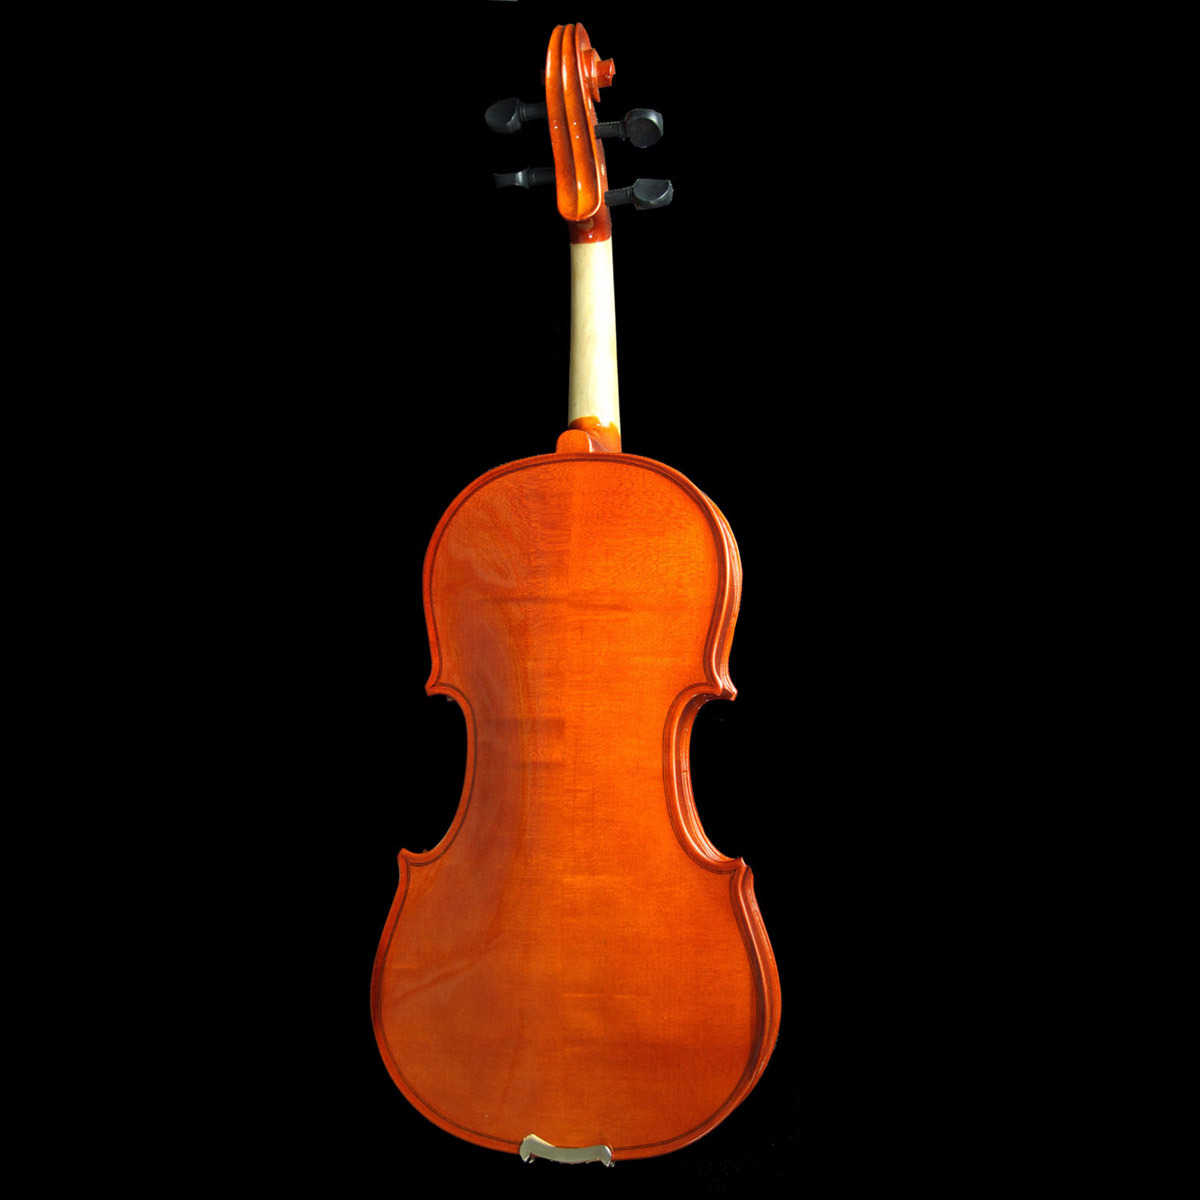 Spruce Solidwood Popular Violin 1/8-4/4 (N-V02)